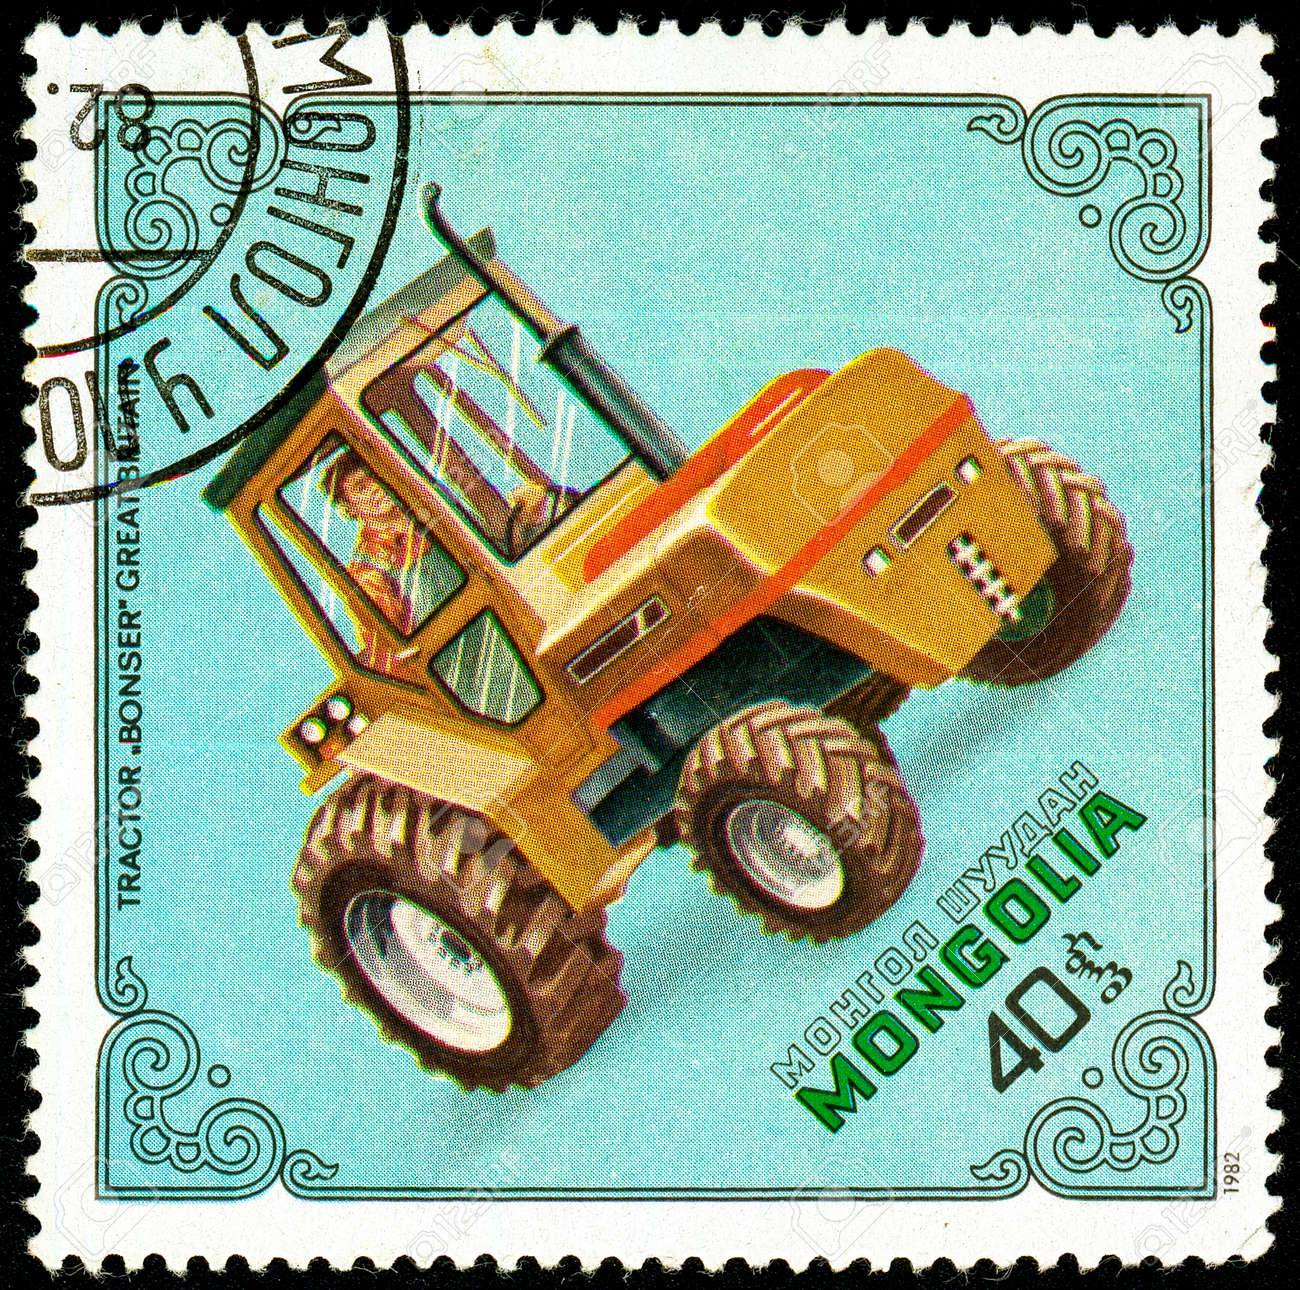 Ukraine - circa 2018: A postage stamp printed in Mongolia show Tractor Bonser, Britain. Series: Tractors. Circa 1982. Banque d'images - 94408053